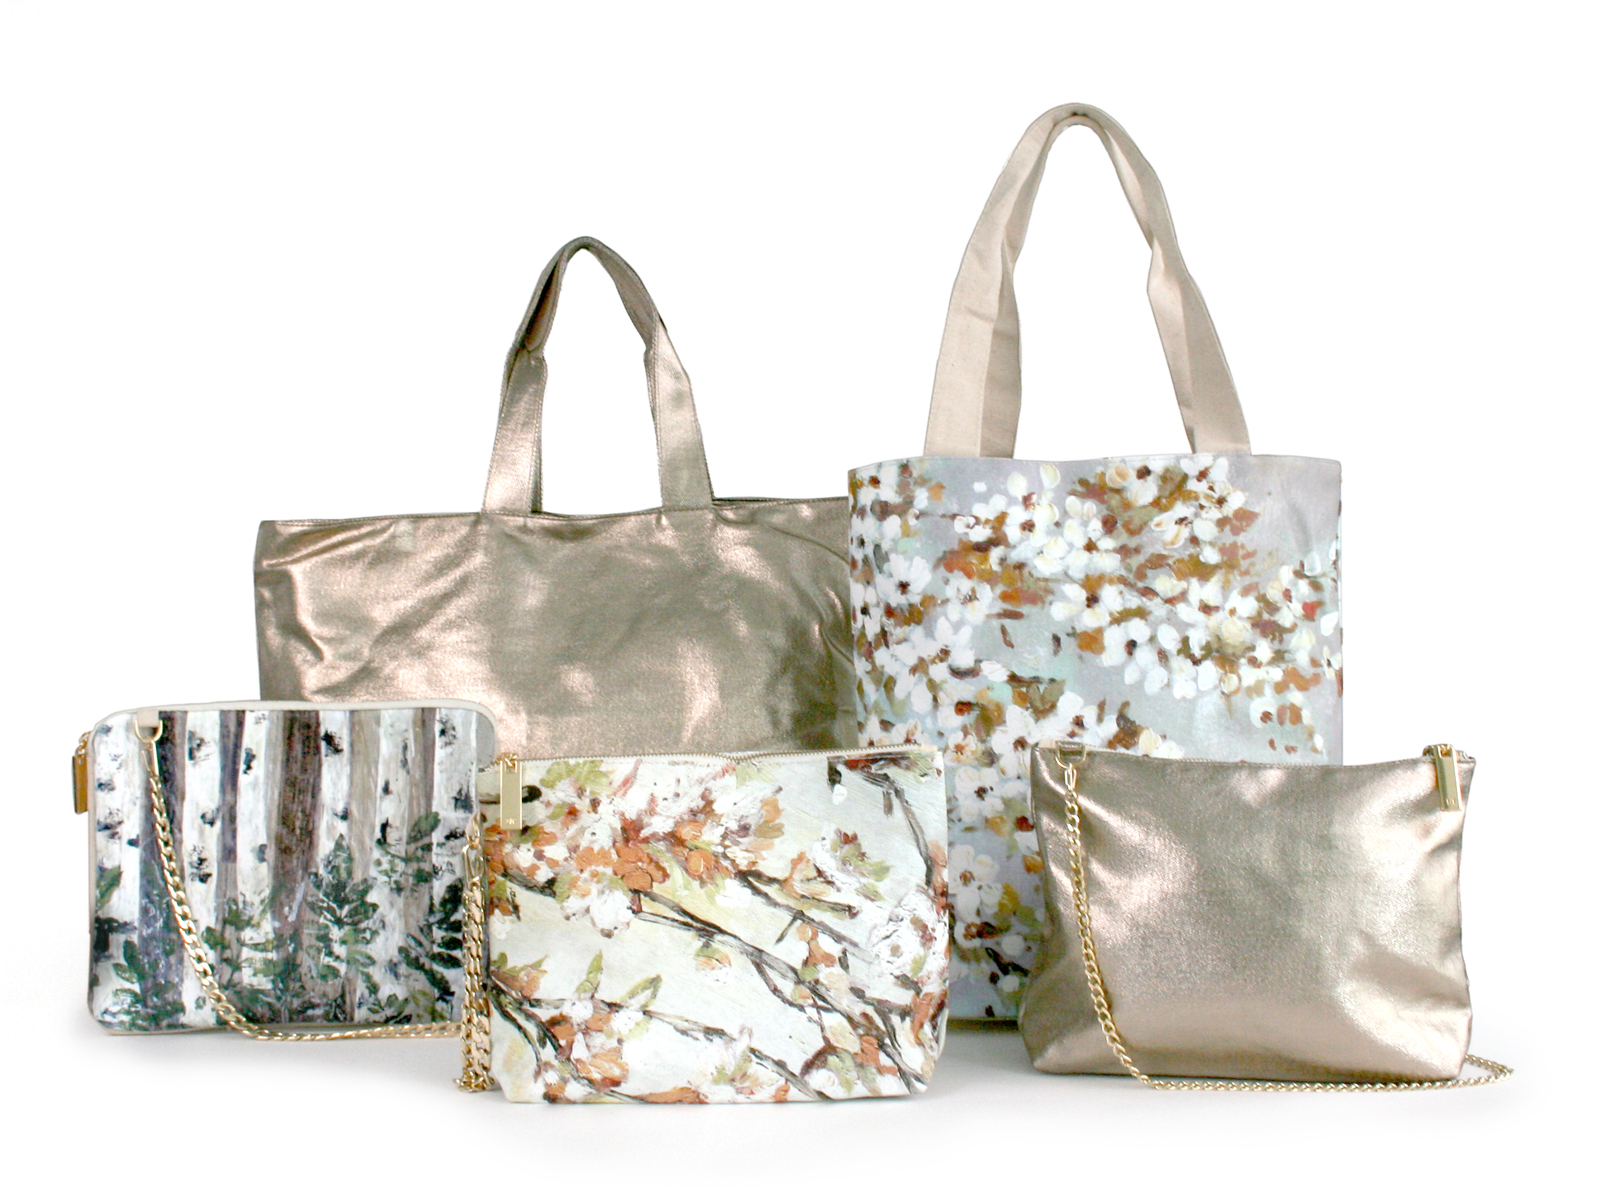 Irena Orlov Designs Limited Edition Handbags